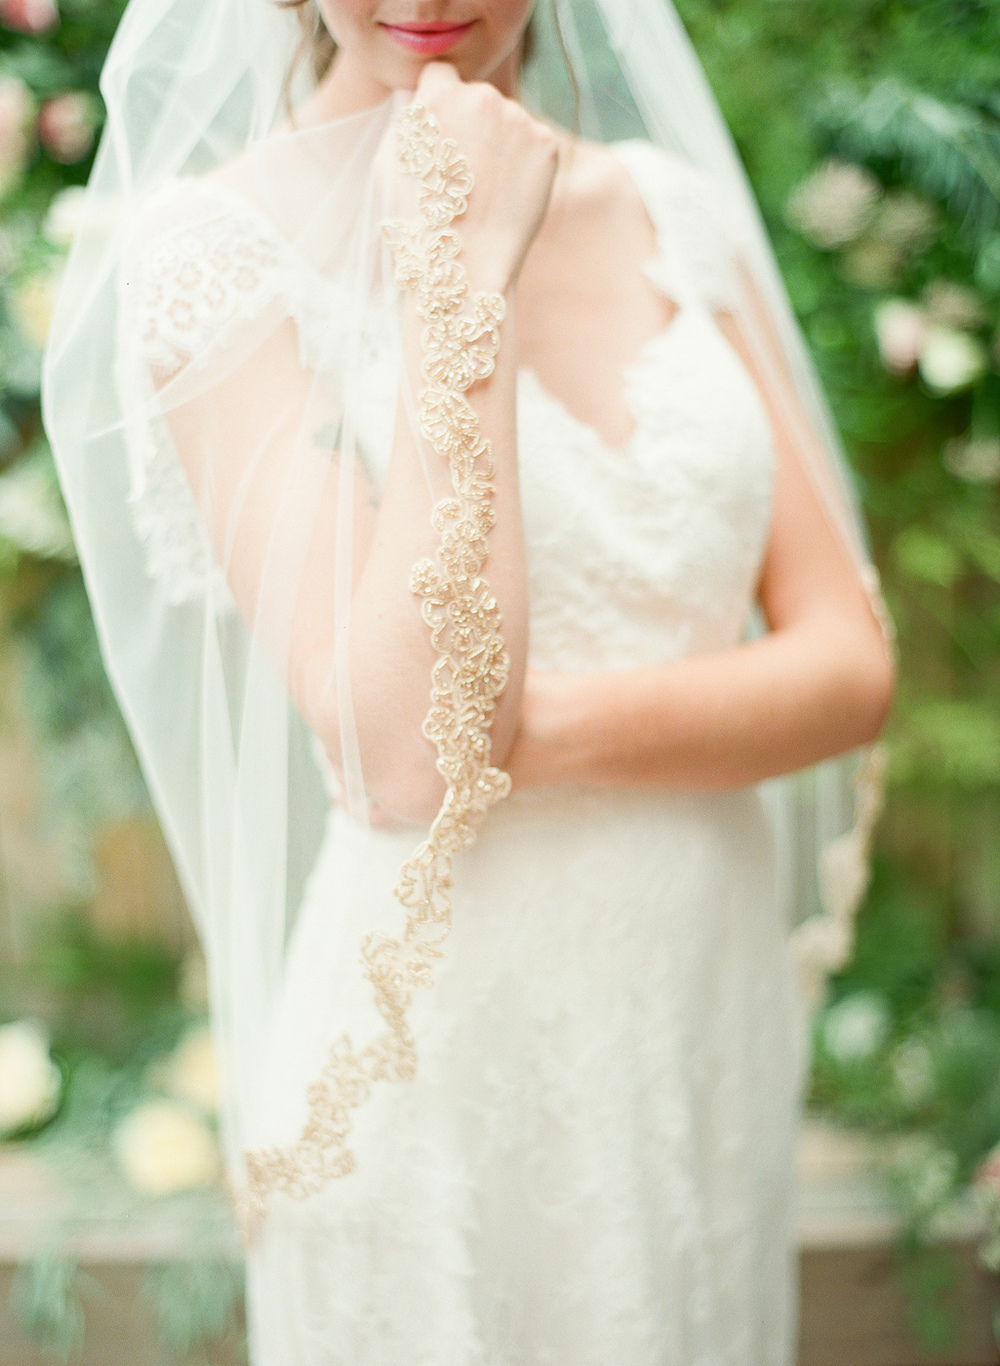 rose gold beaded veil detail by hushed commotion